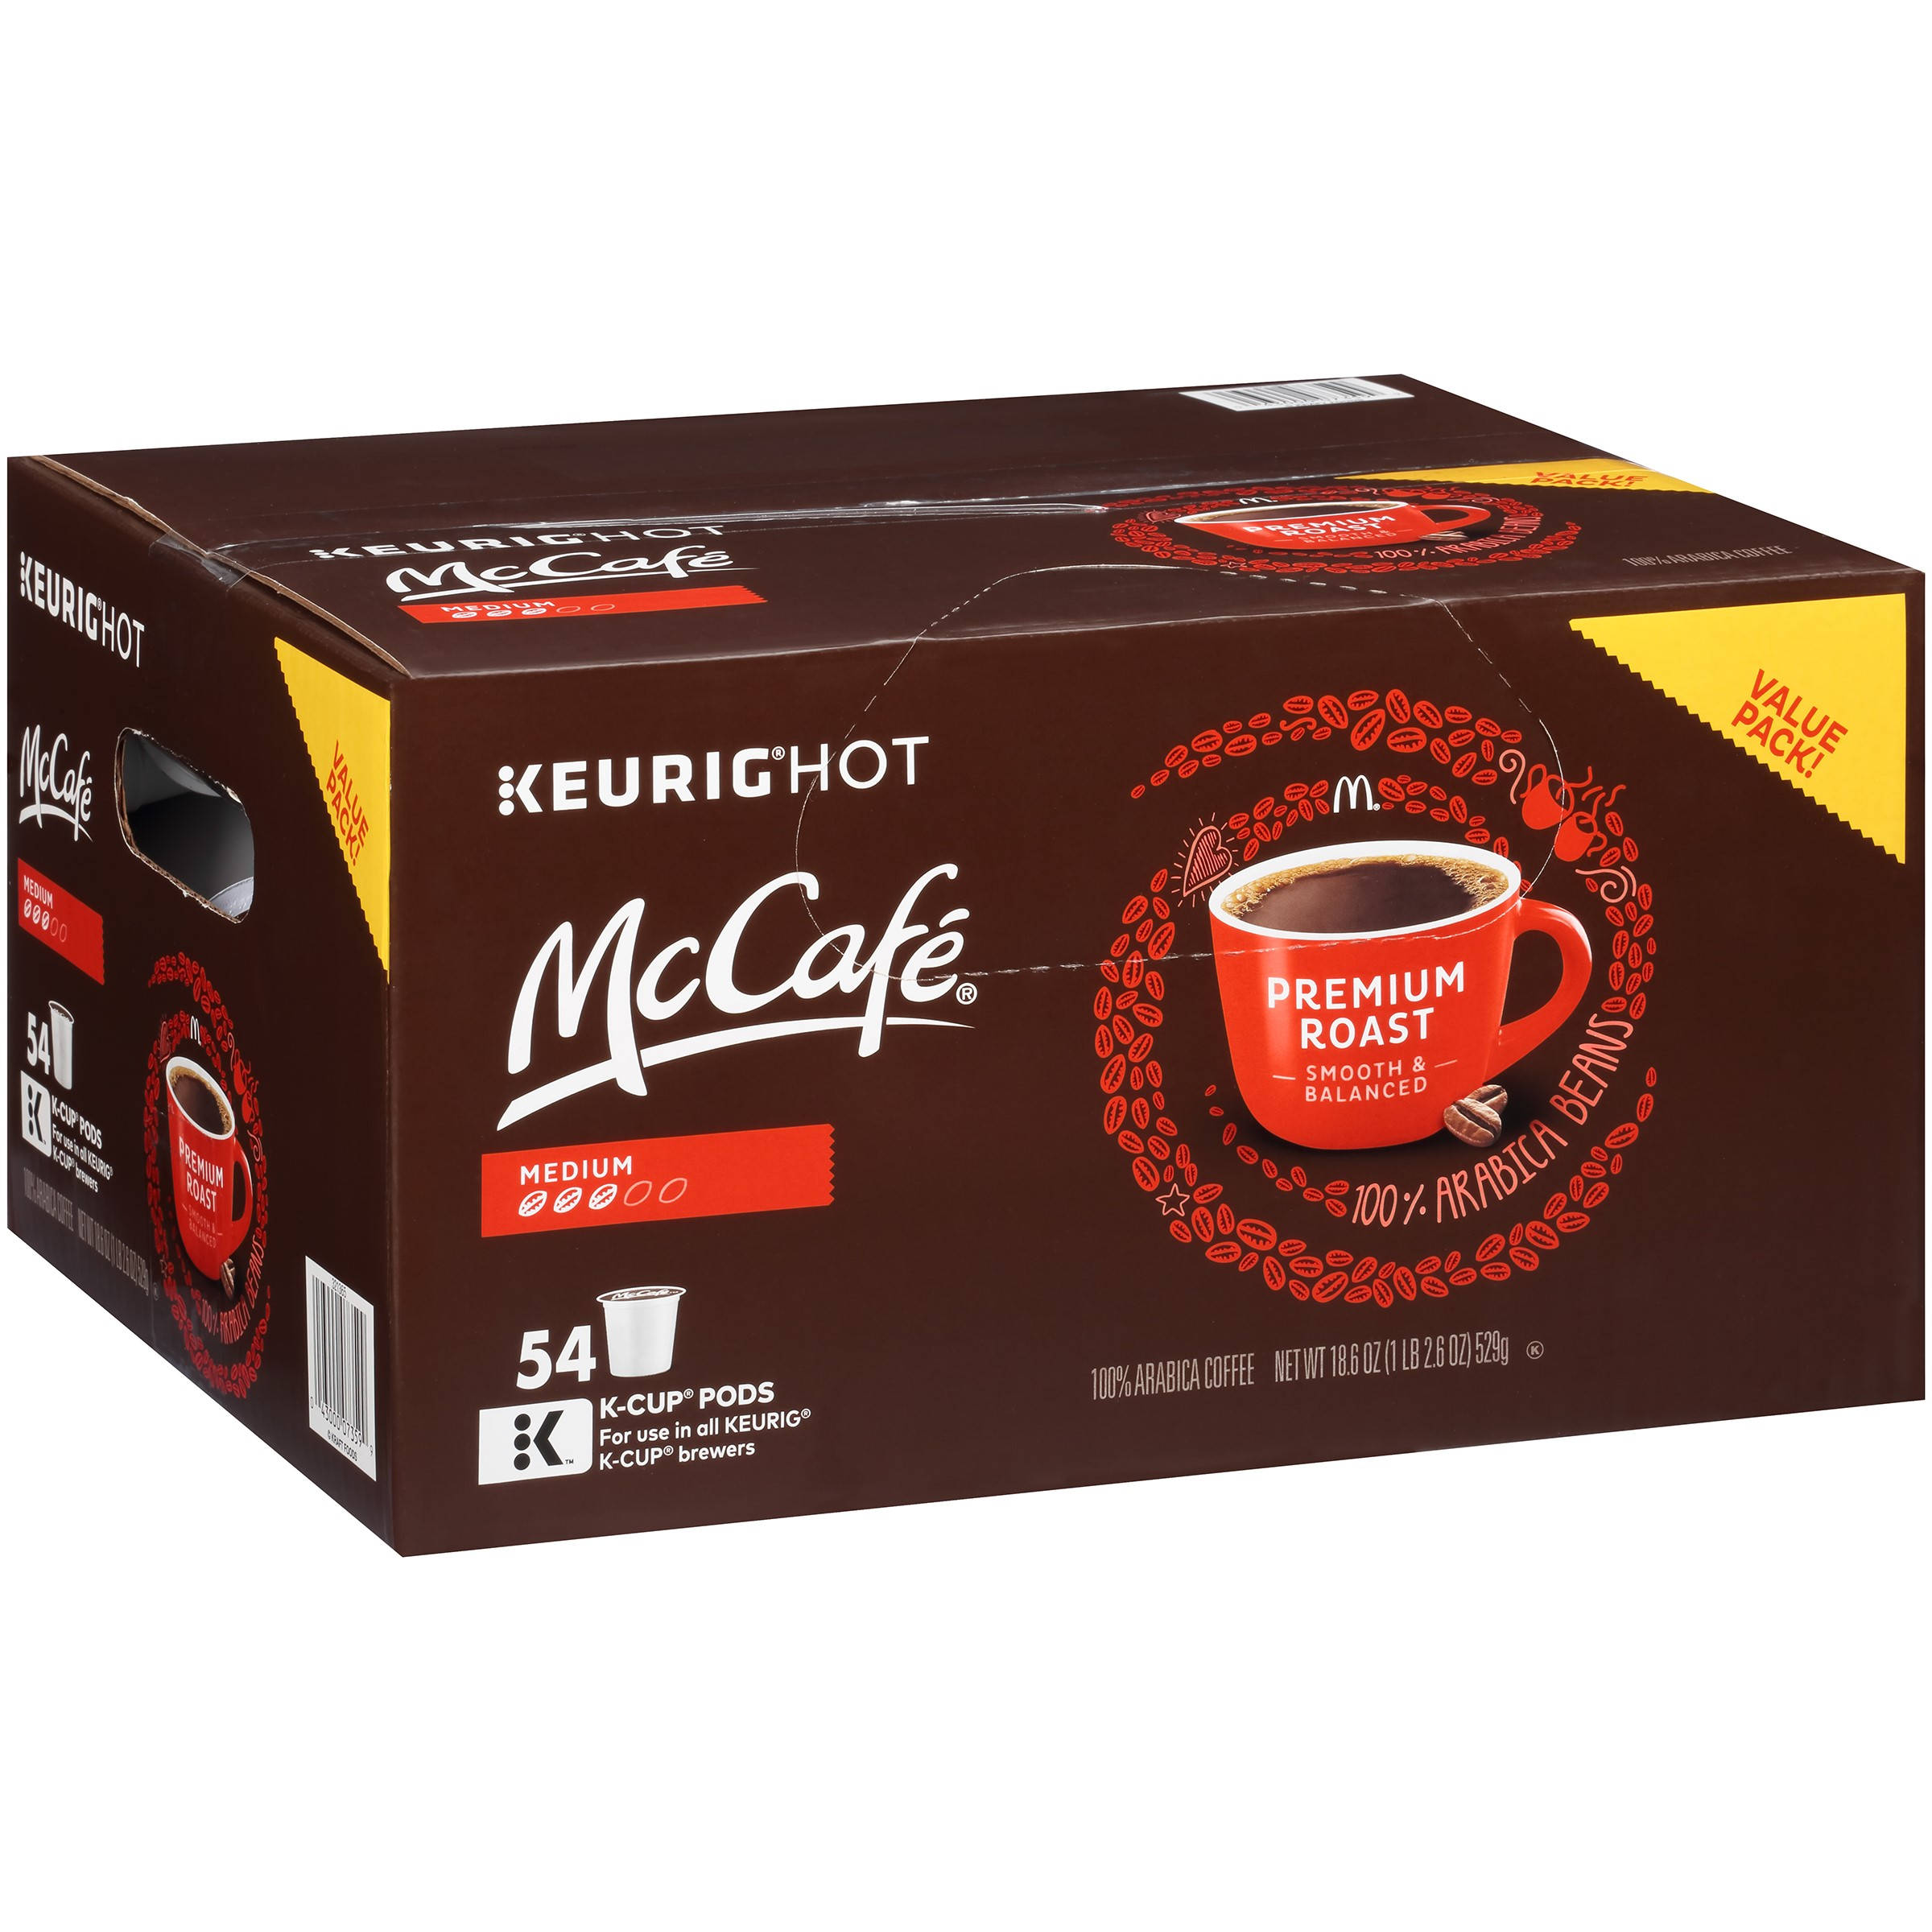 McCafe Premium Medium Roast Coffee K-Cup Pods, 54 count